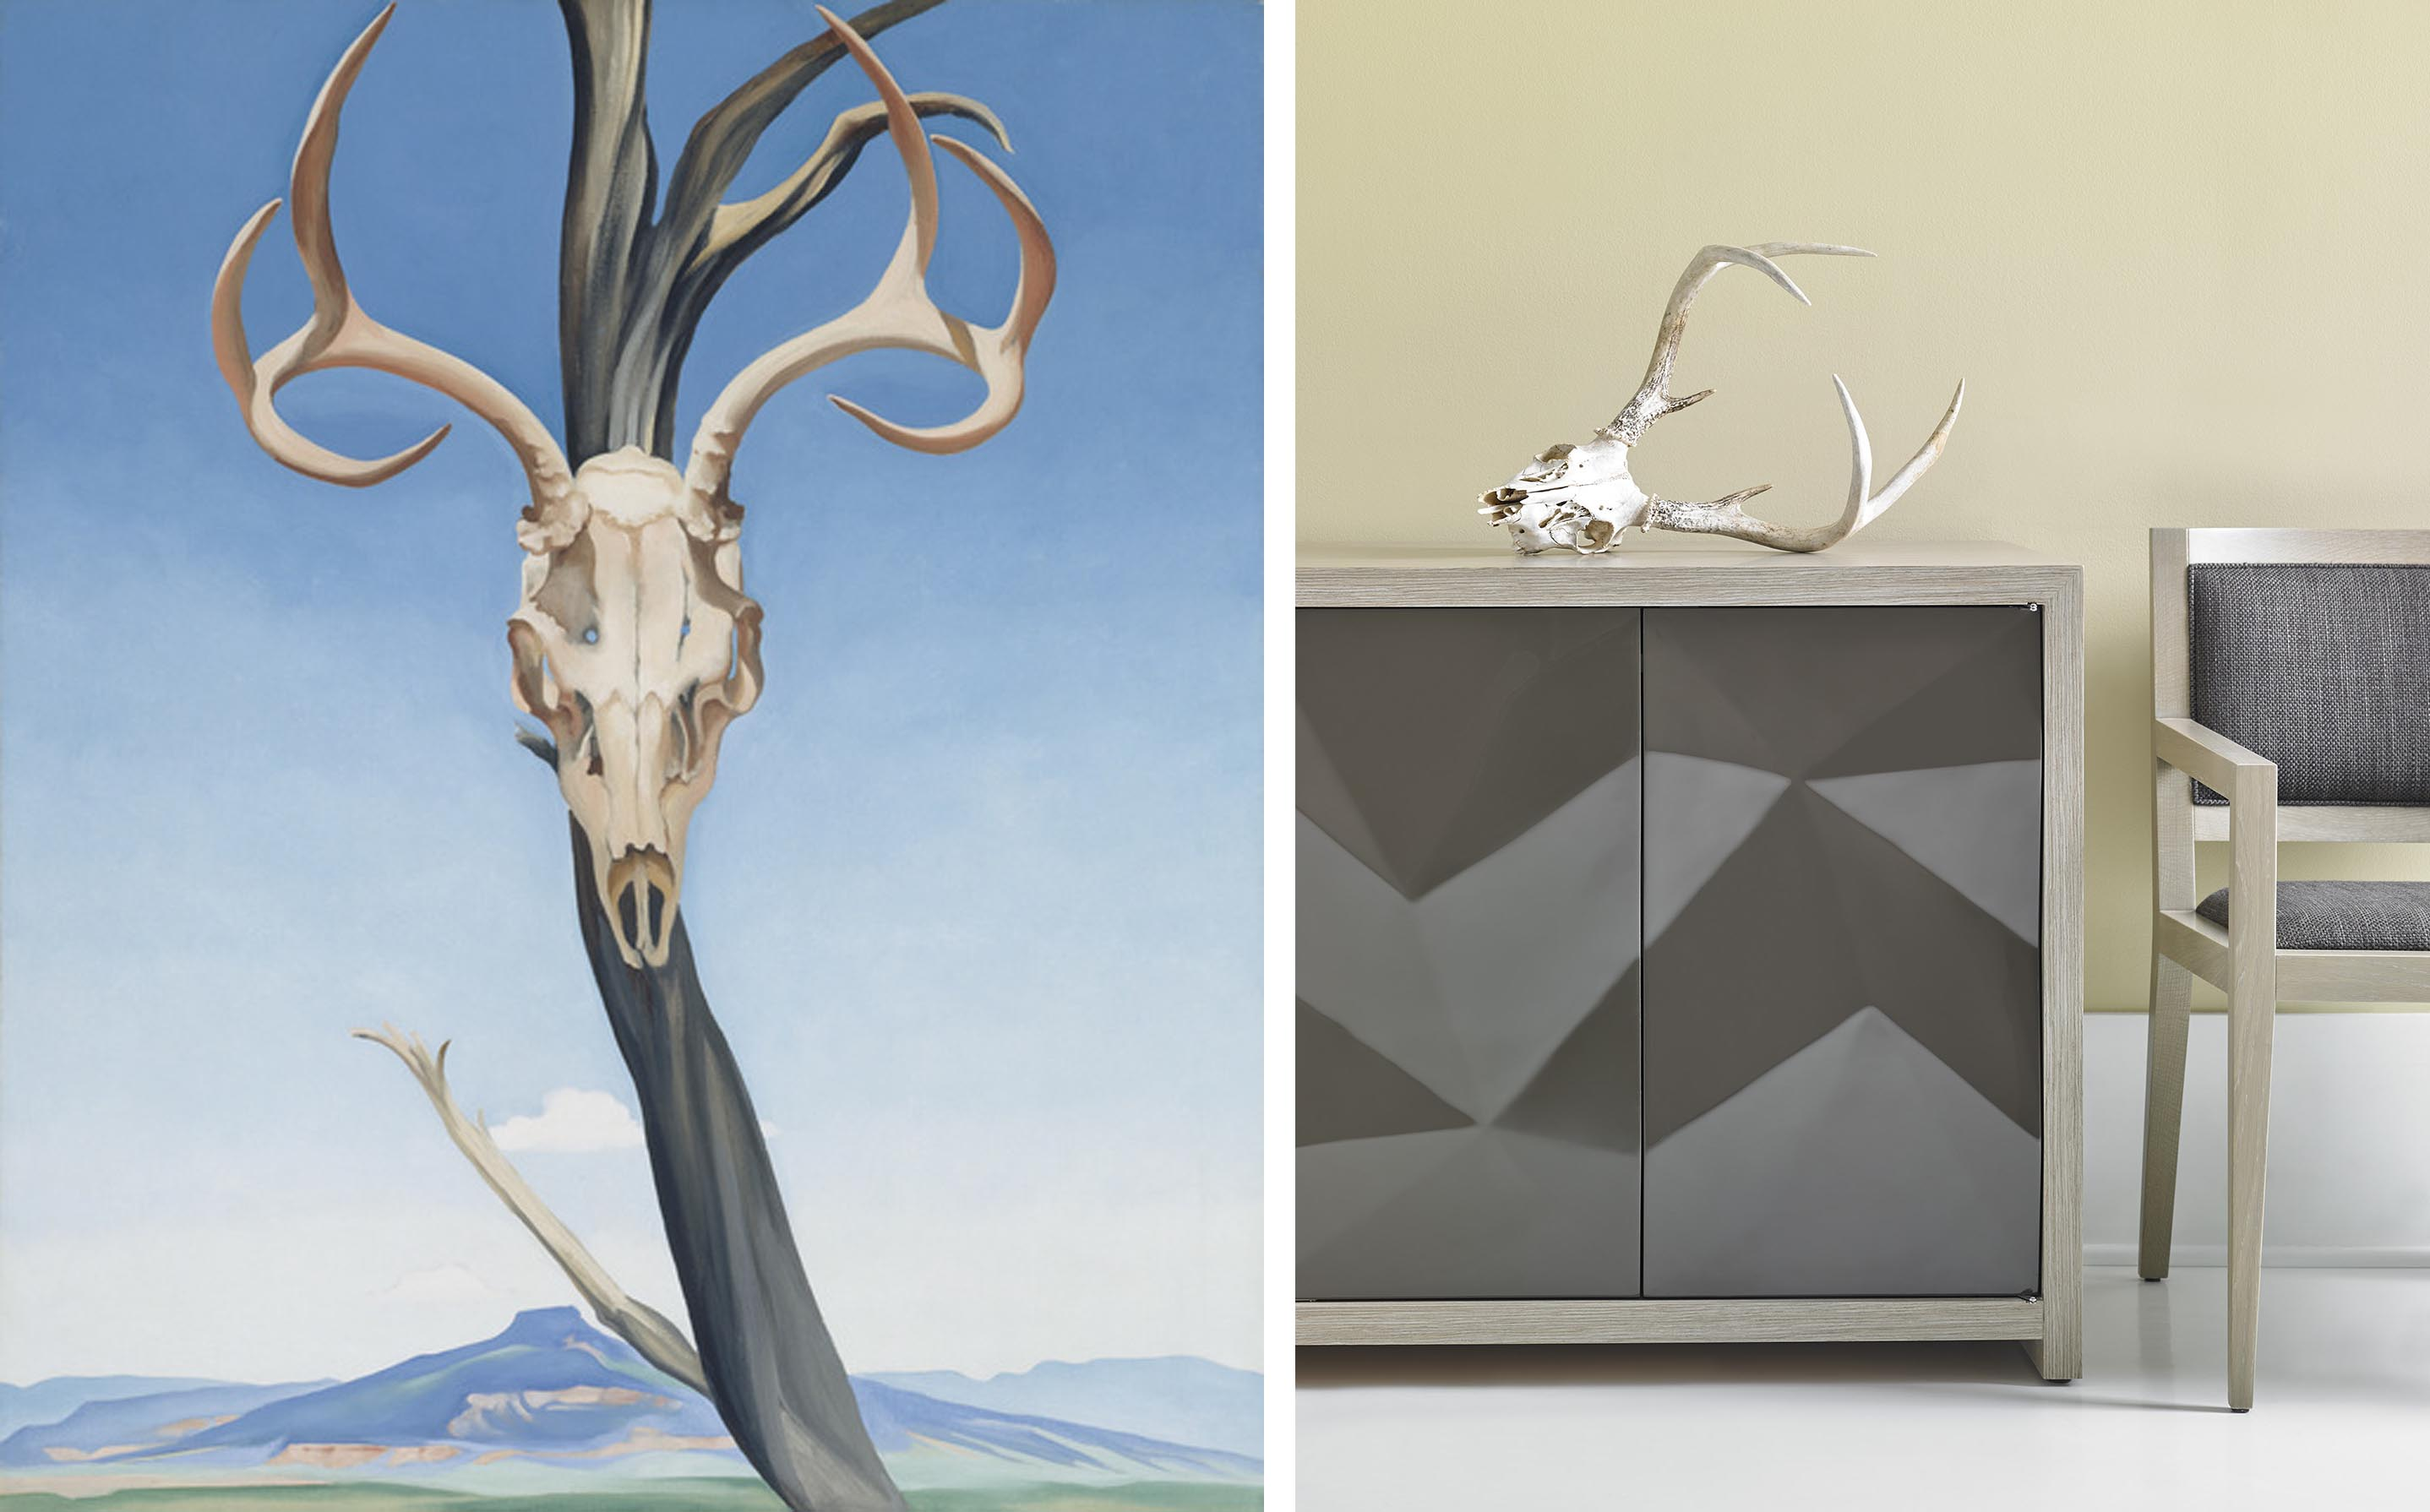 Georgia O'Keefe's Deer's Skull with Pedernal and Bolier Modern Desert